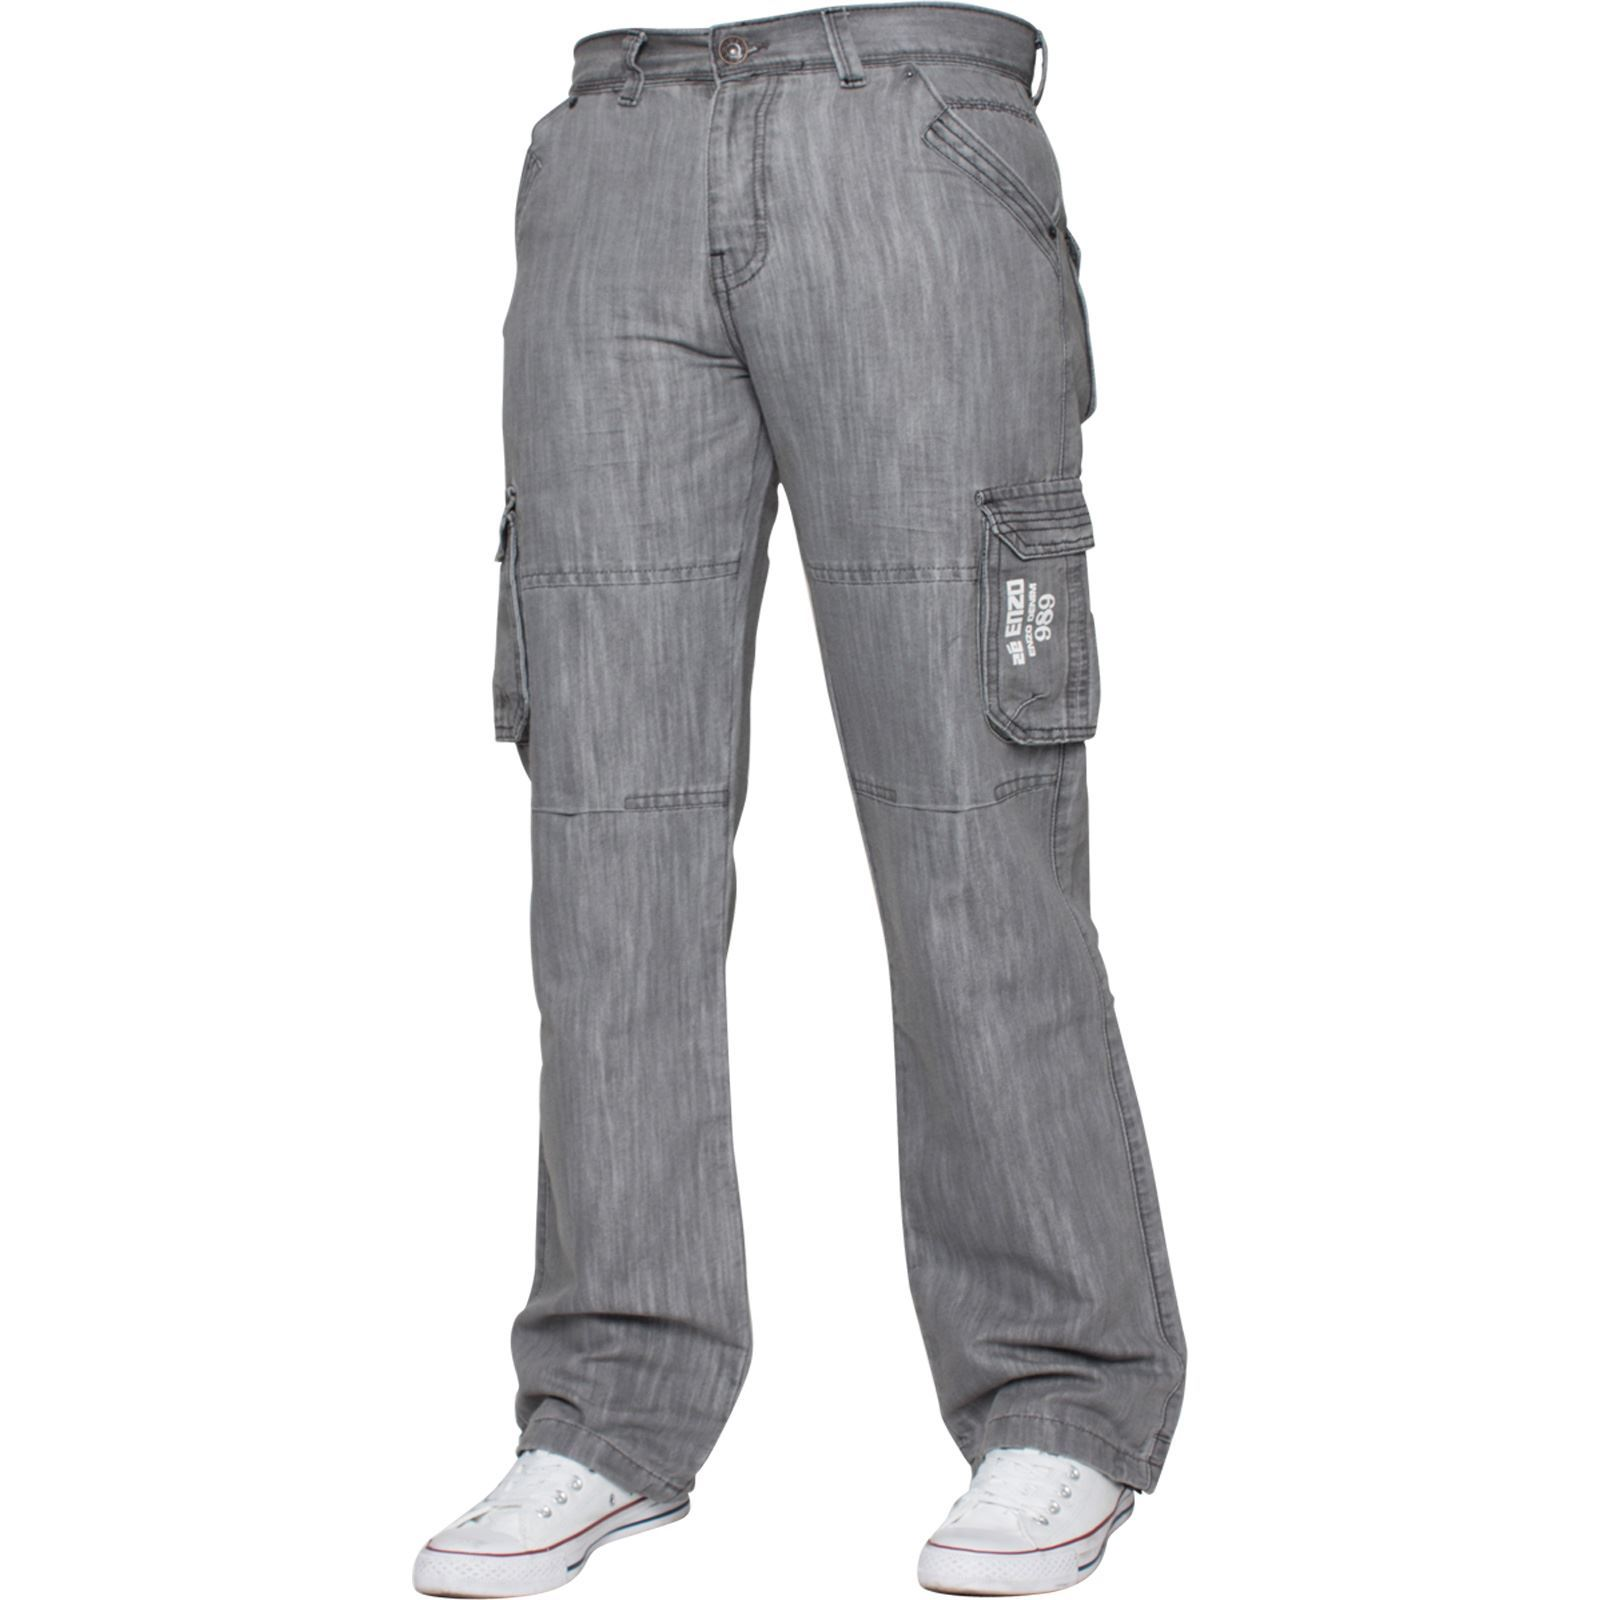 Enzo-Mens-Cargo-Combat-Trousers-Jeans-Work-Casual-Denim-Pants-Big-Tall-All-Waist thumbnail 23